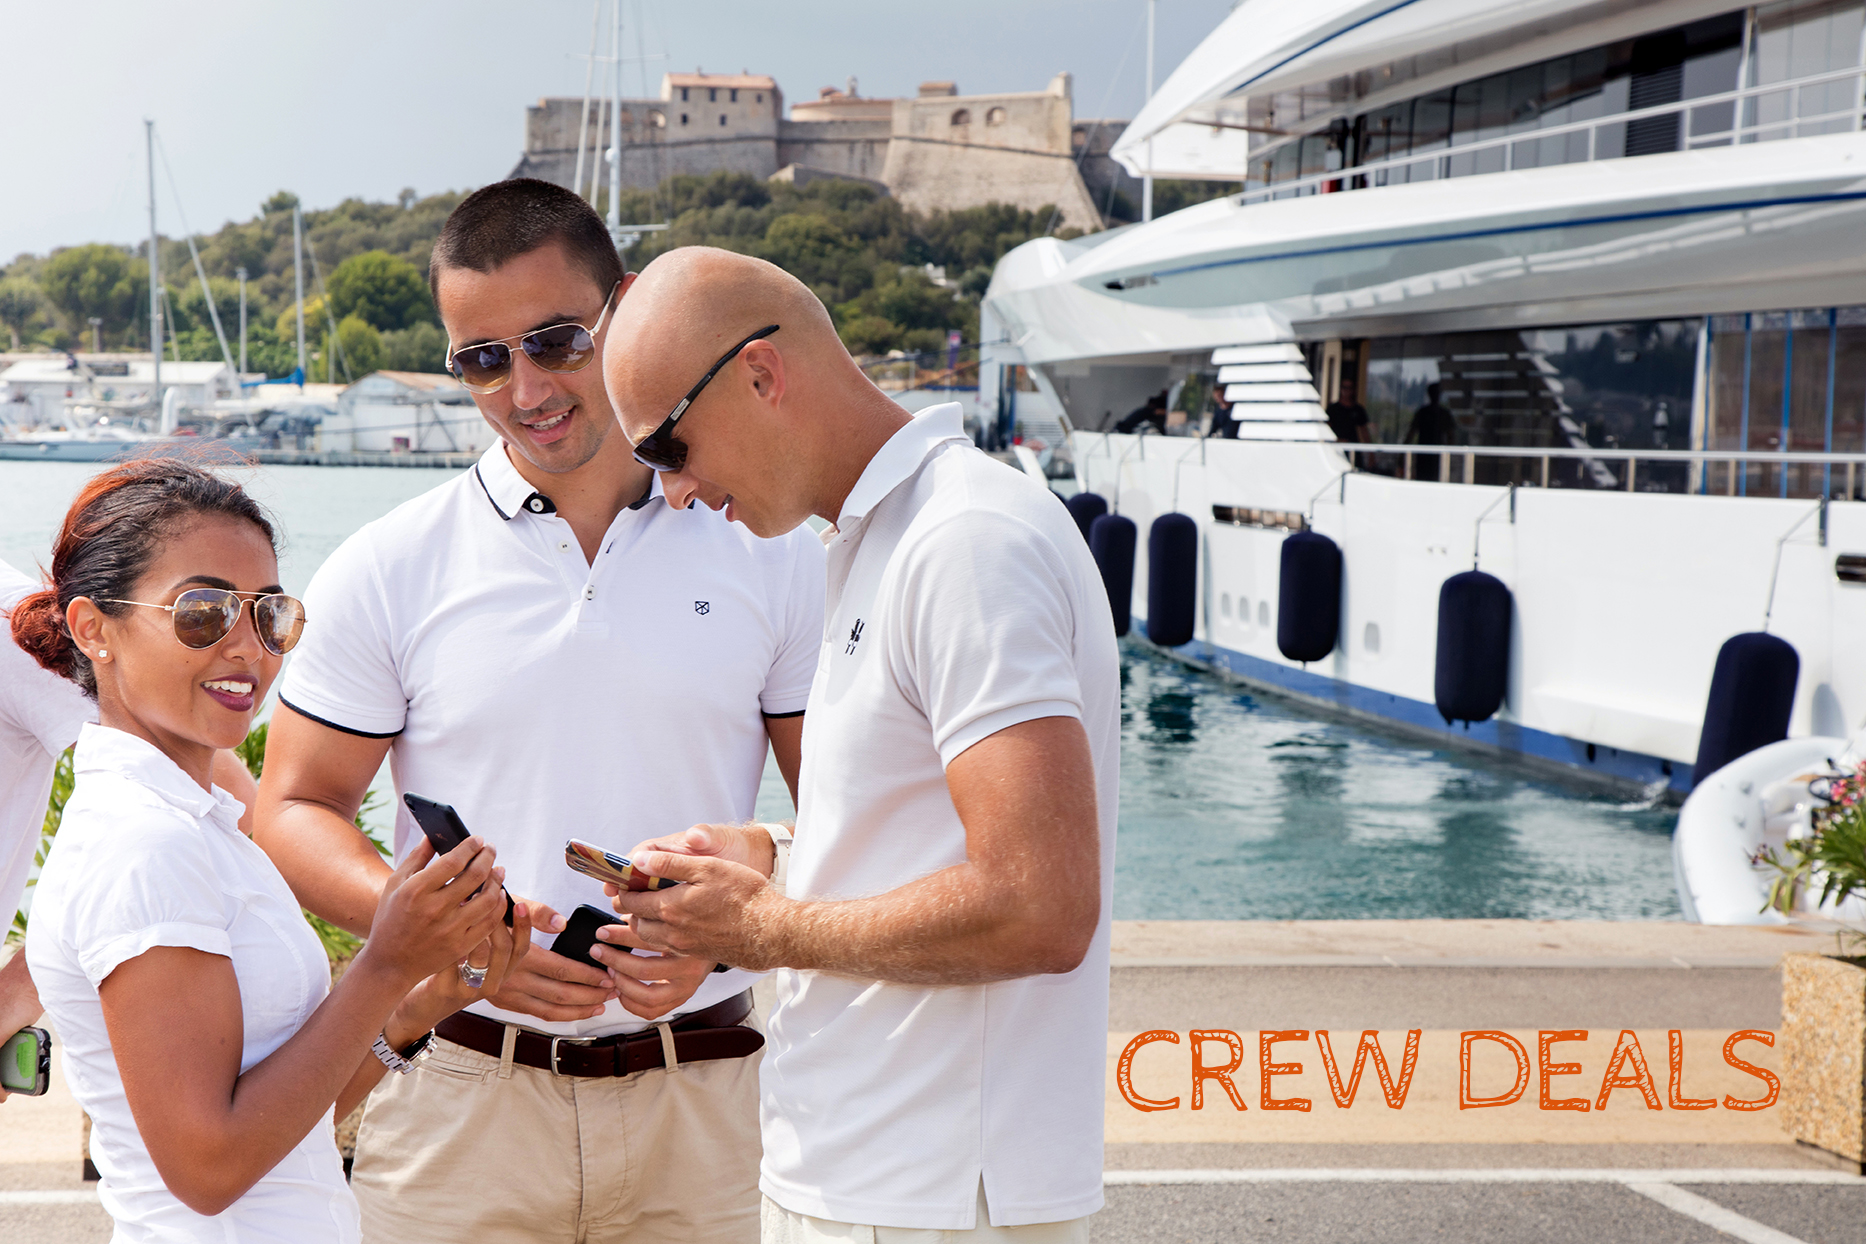 Yacht Crew Deals in June